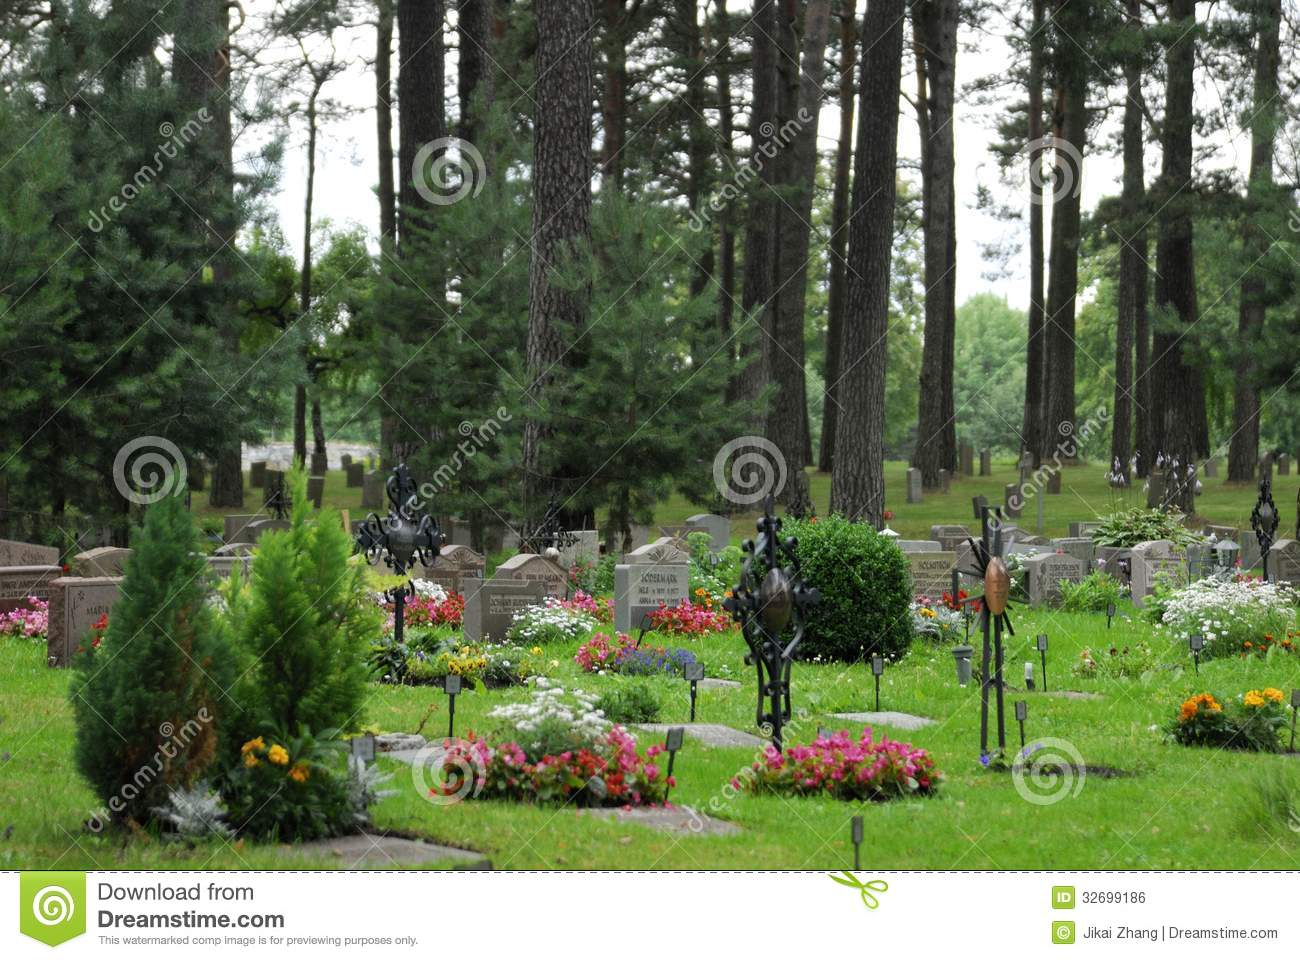 The Landscape of Death and Green Burial - How Our Beliefs Design ...